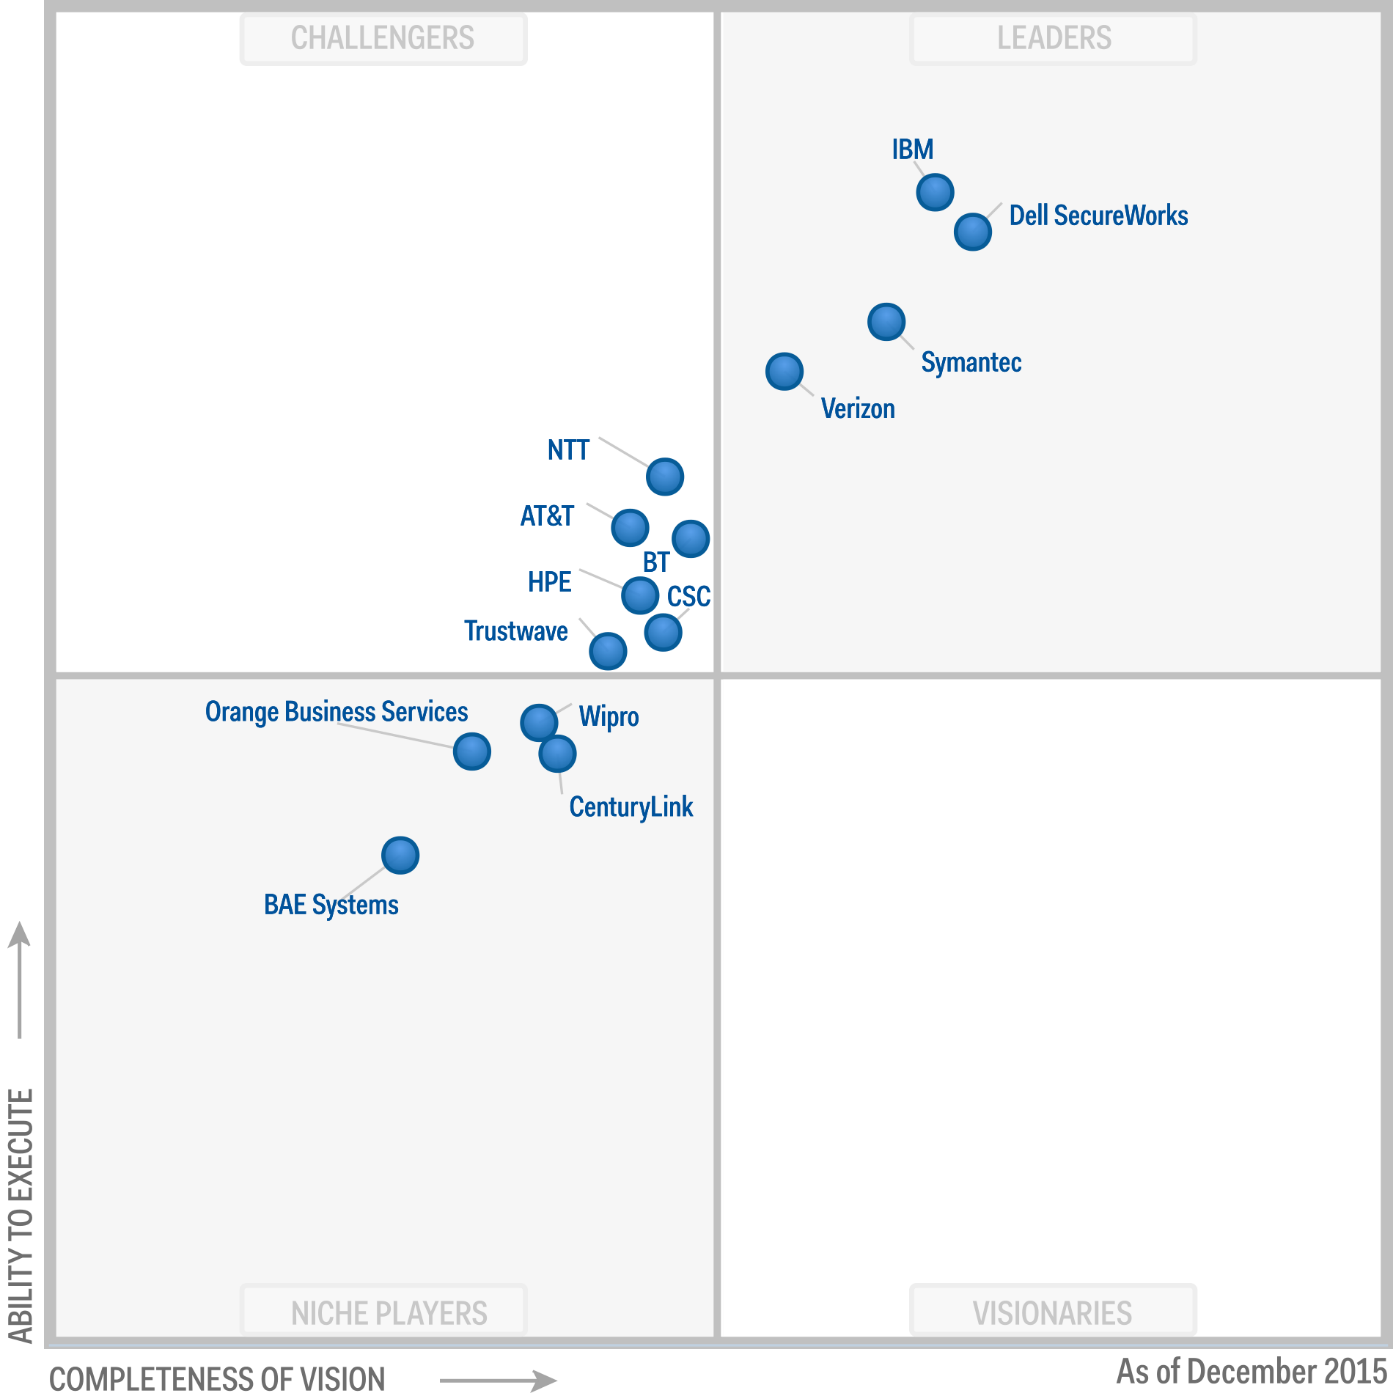 Magic Quadrant for Managed Security Services 2015 (G00273932)